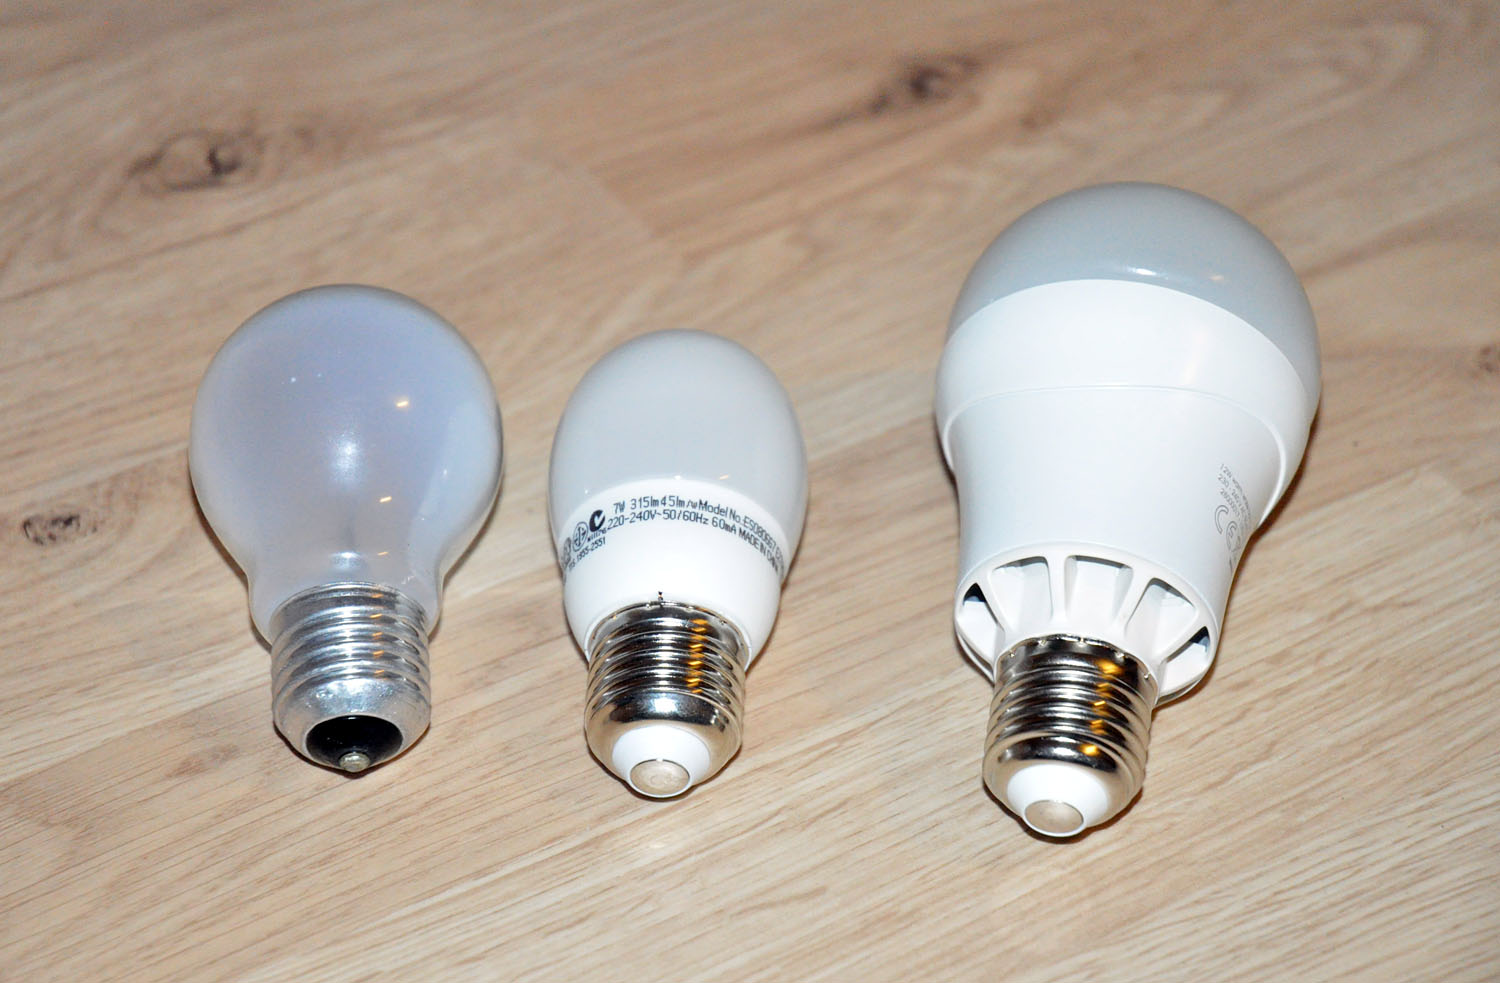 der test ledon led leuchtmittel vs energiesparlampe vs 60 watt lampe. Black Bedroom Furniture Sets. Home Design Ideas